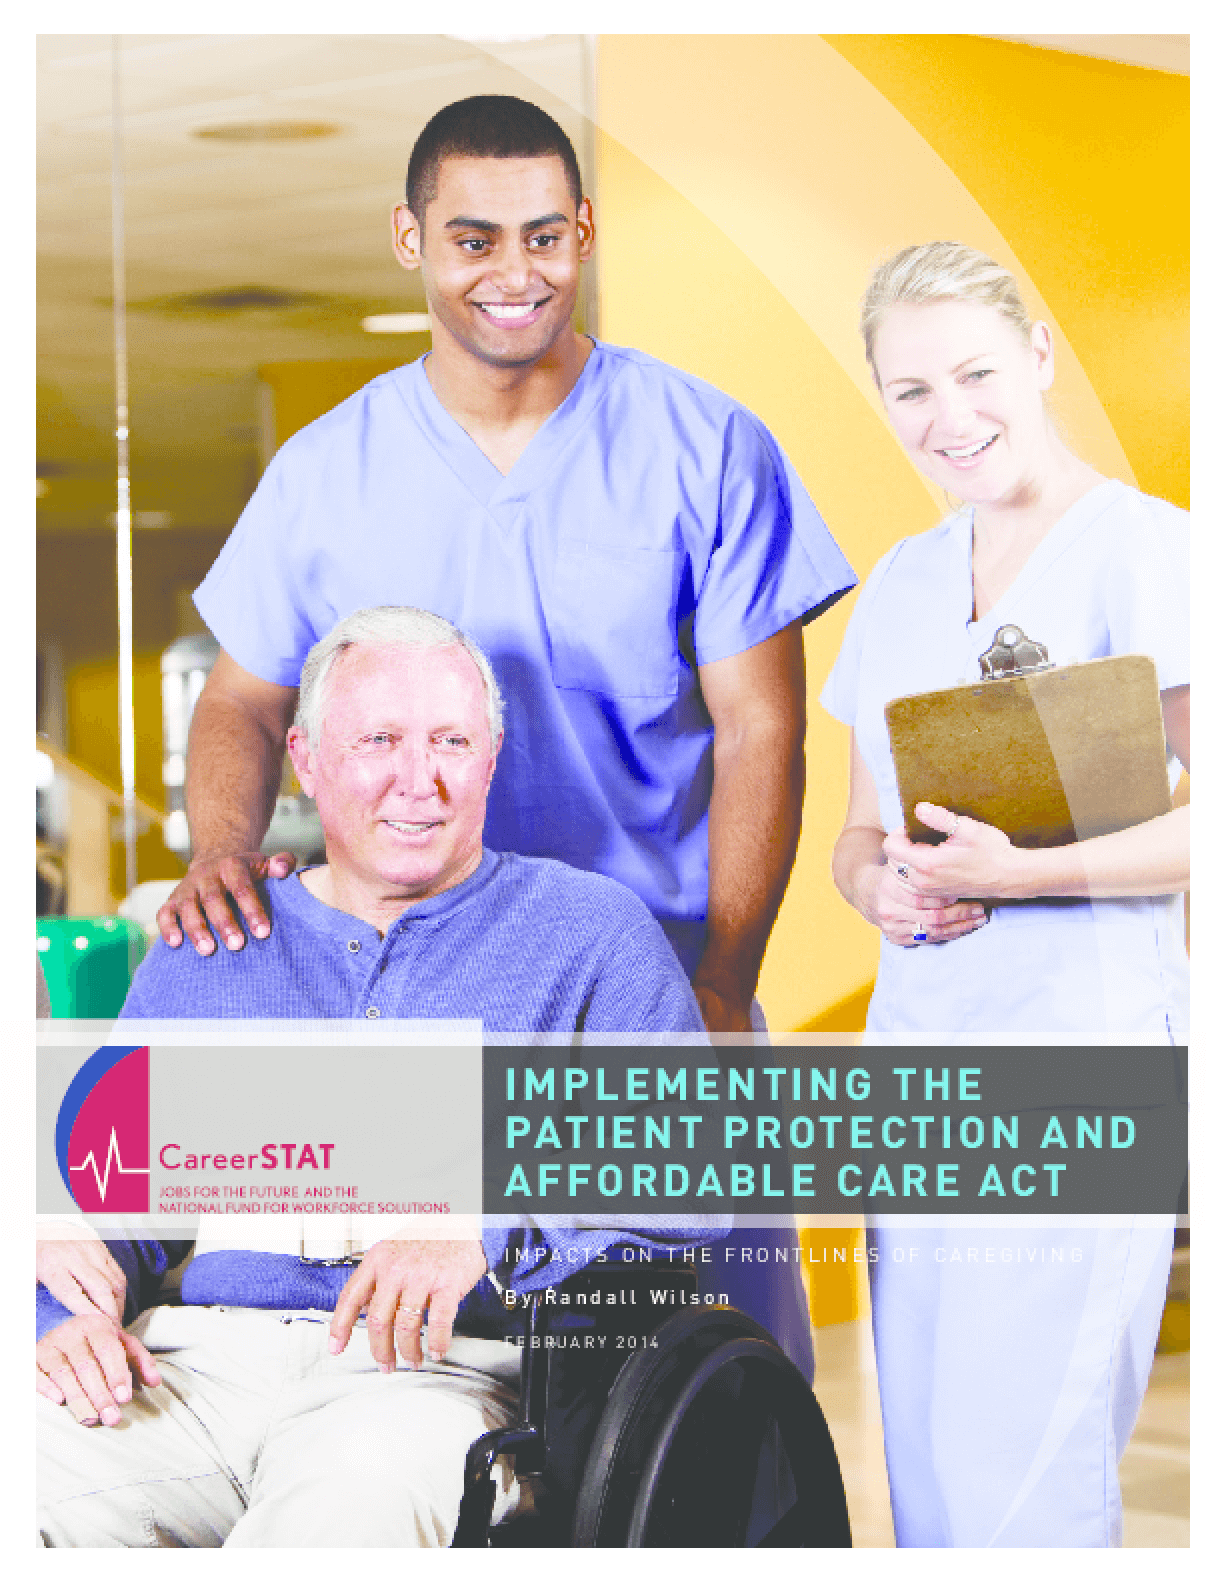 Implementing the Patient Protection and Affordable Care Act: Impacts on the Frontlines of Caregiving